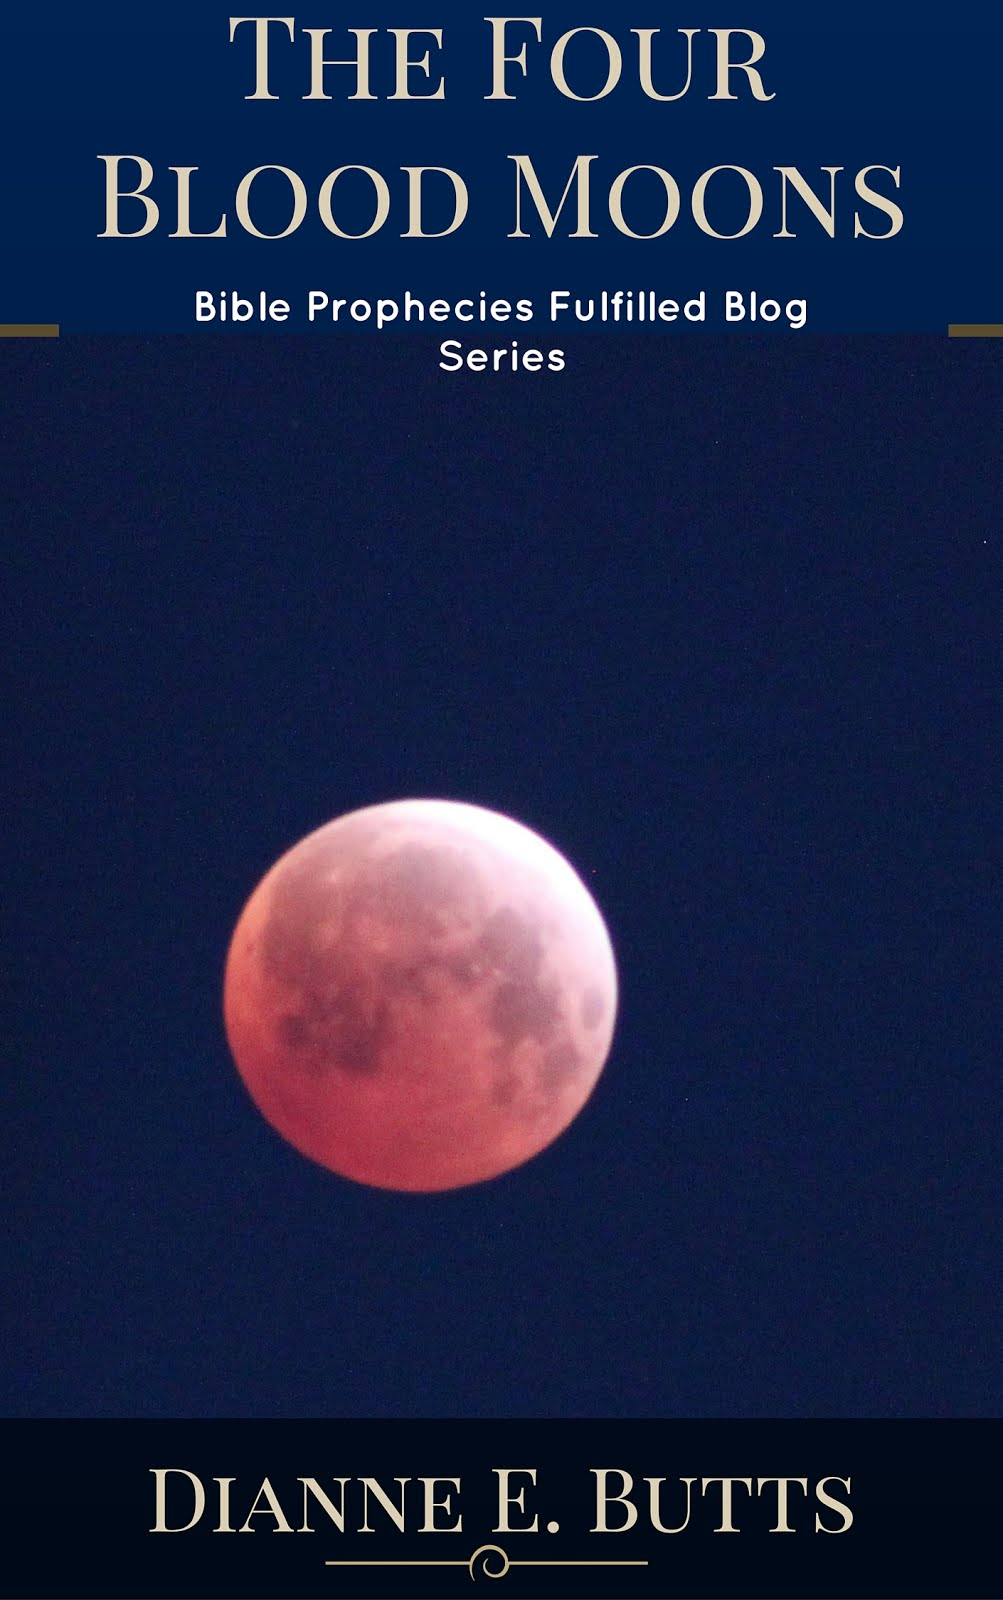 BEST OF BLOG E-BOOK!  The Four Blood Moons